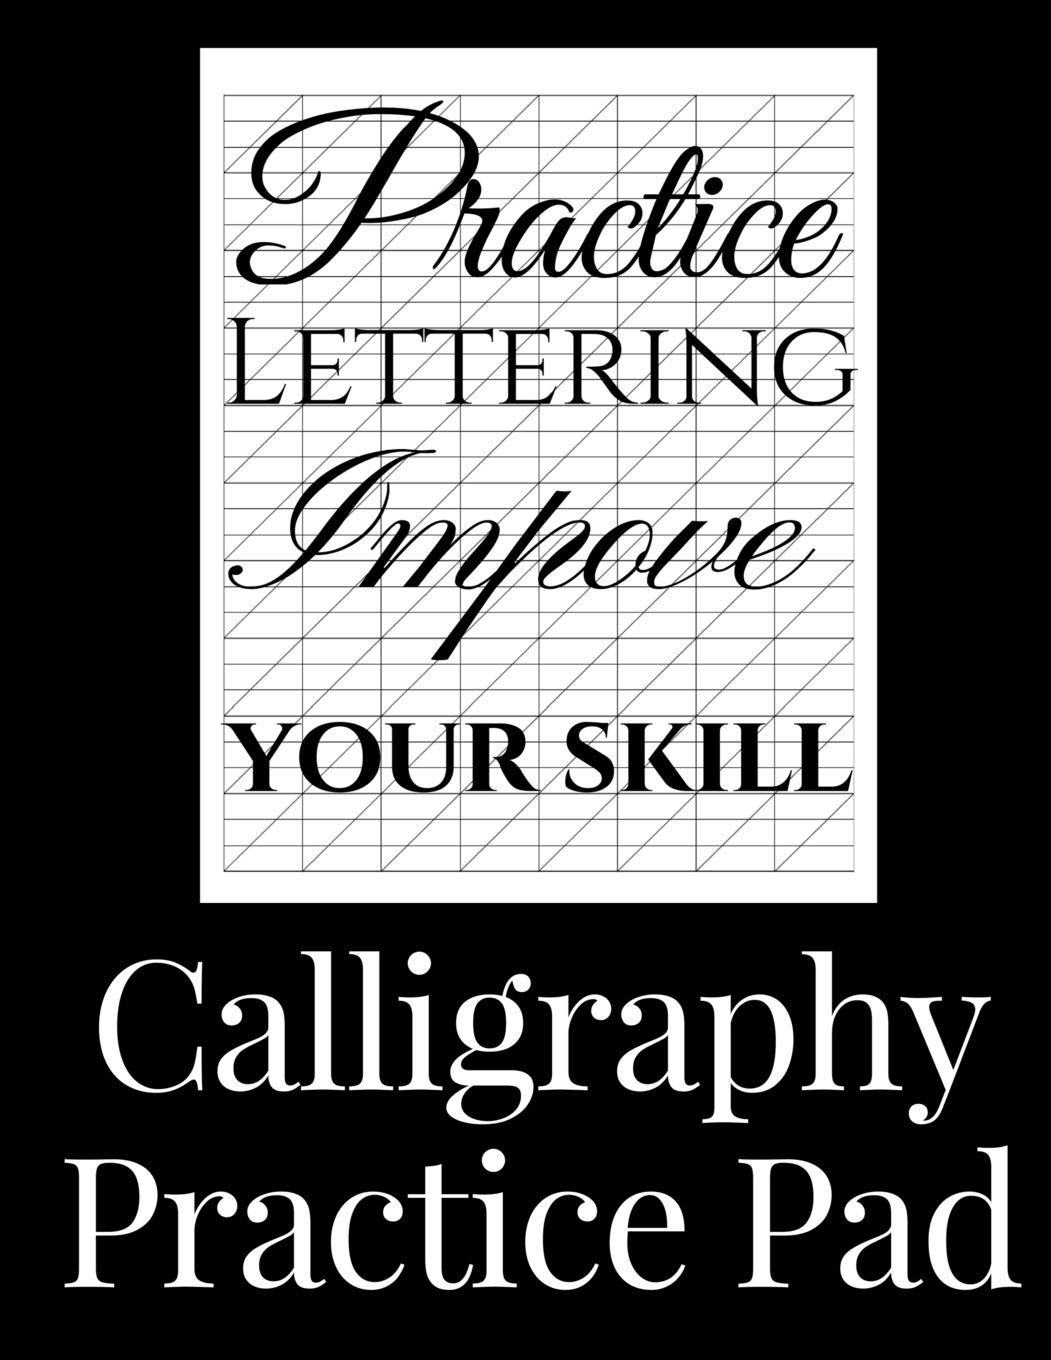 Calligraphy Practice Pad: Large Calligraphy Paper, 150 sheet pad, perfect calligraphy practice paper and workbook for lettering artists and beginners pdf